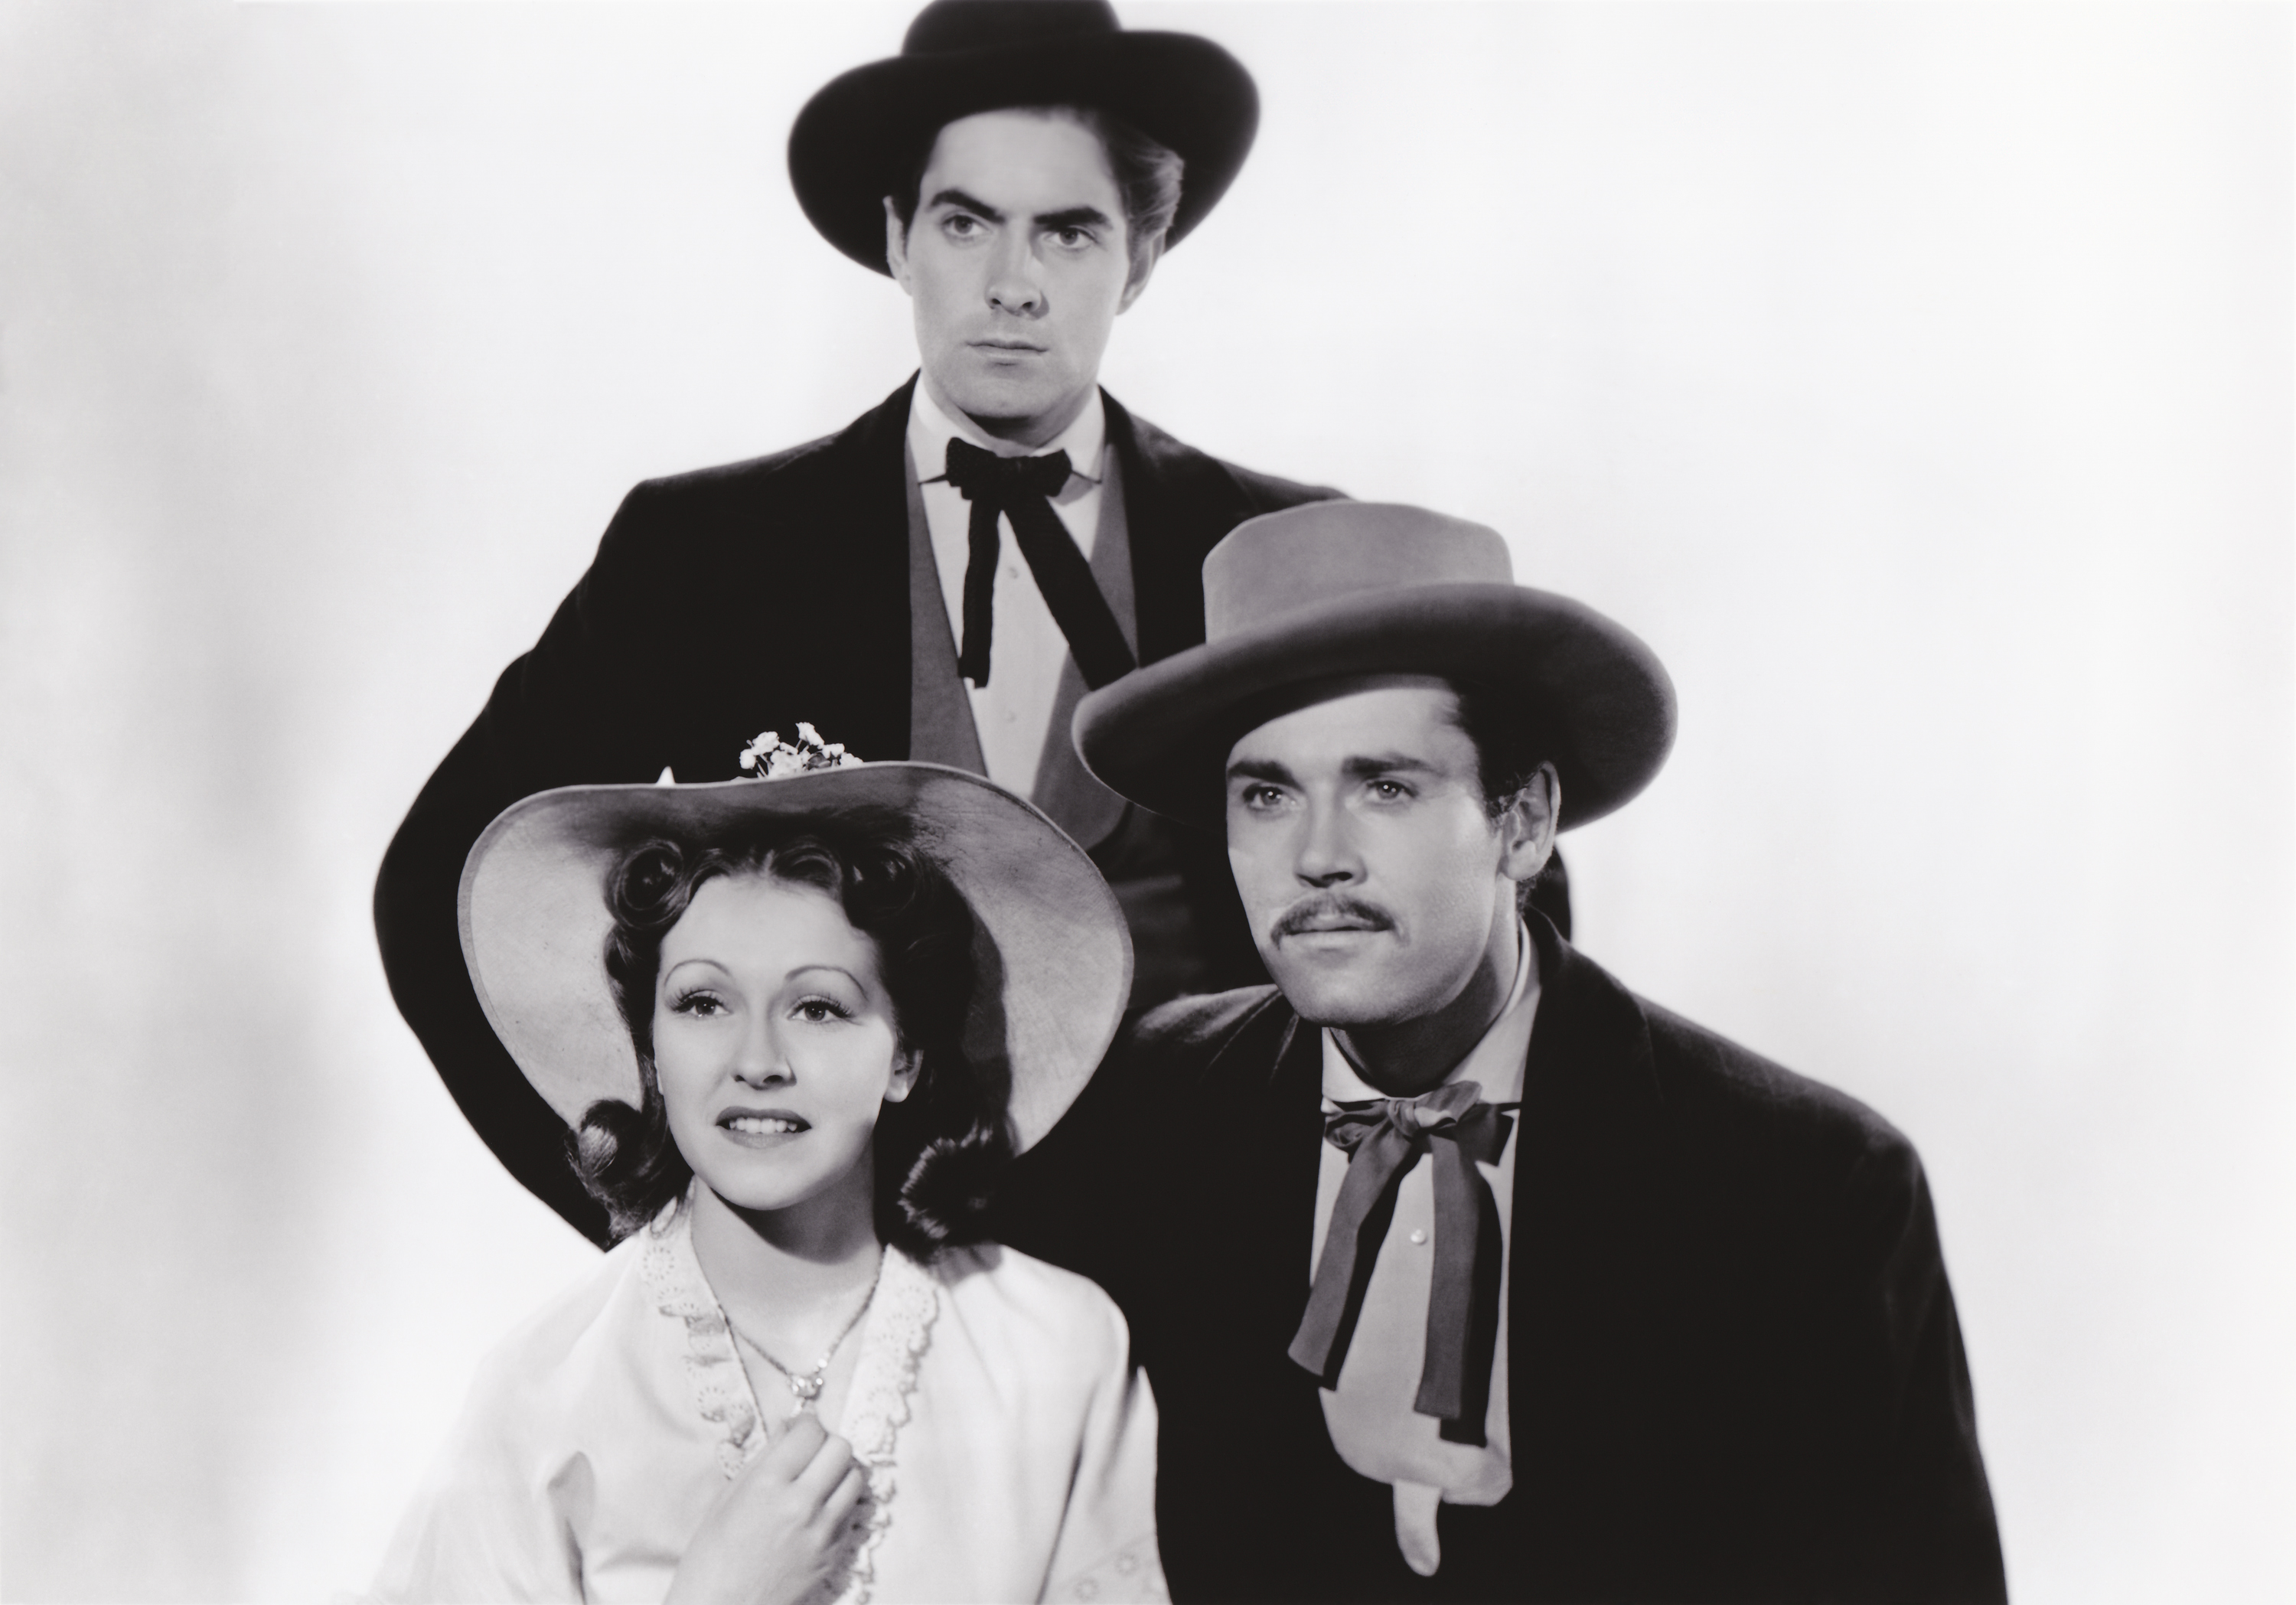 Nancy Kelly in Jesse James with (L to R) Nancy Kelly, Tyrone Power, Jr., Henry Fonda (Courtesy of Sarah and Michelle)